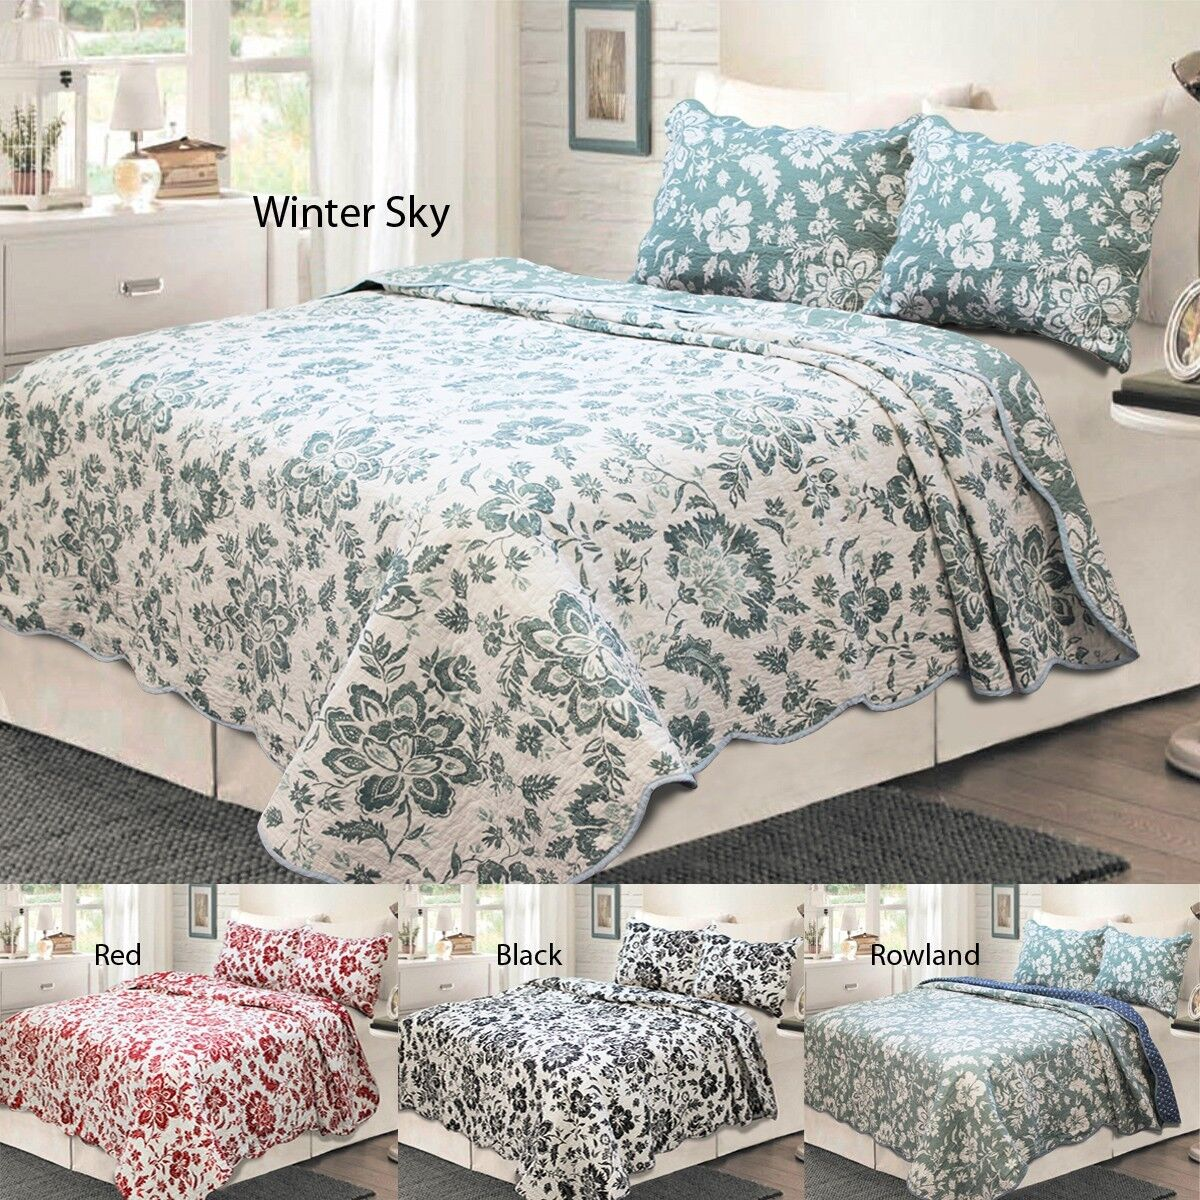 Madison Park 100% Cotton 3-Piece Quilt Set, Bedspread, Cover